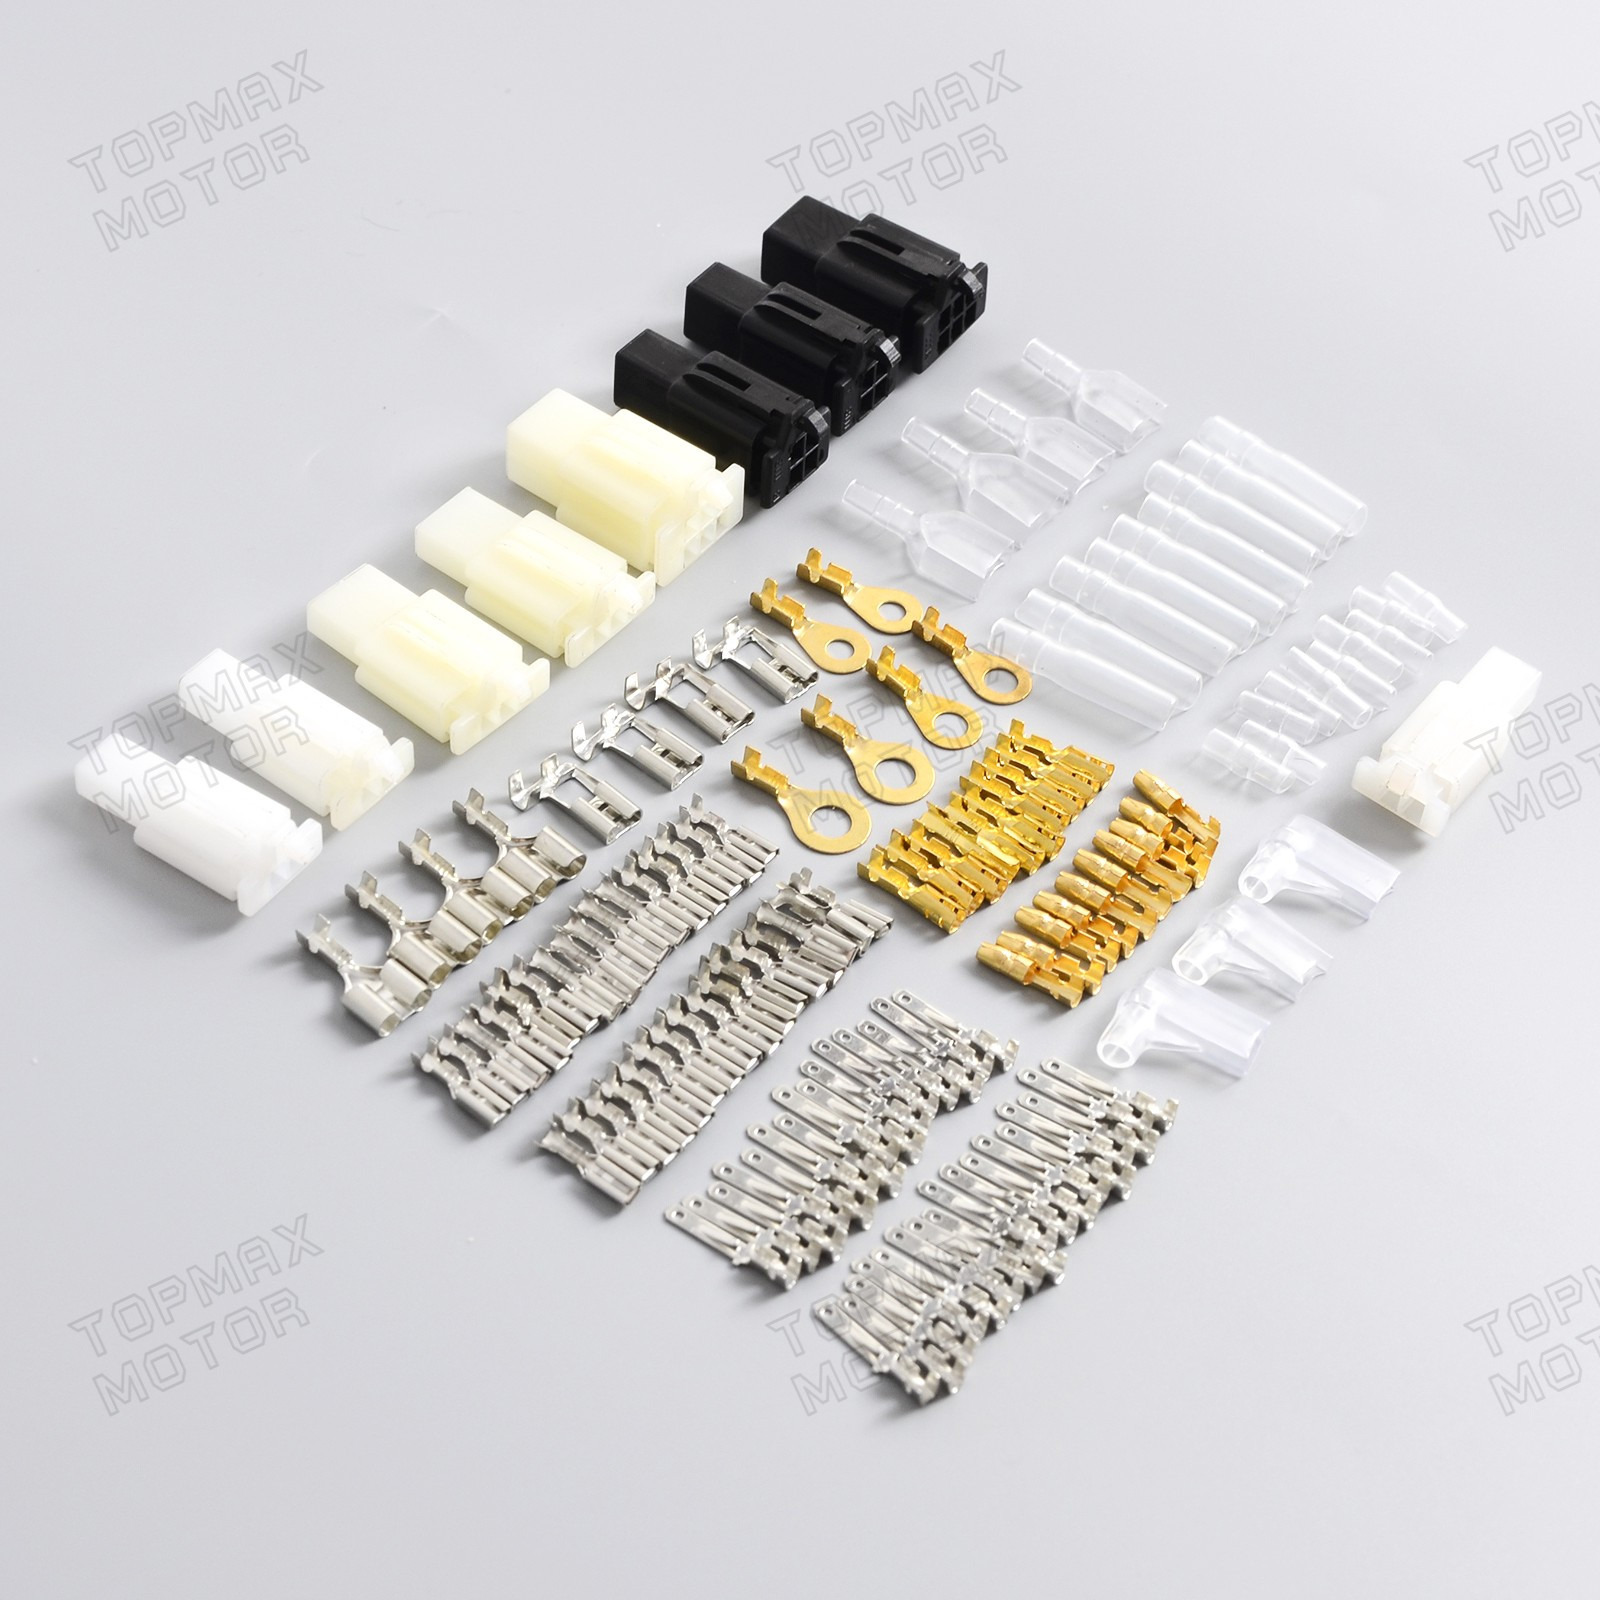 hight resolution of connector wiring loom automotive harness auto terminal repair kit for motorcycle